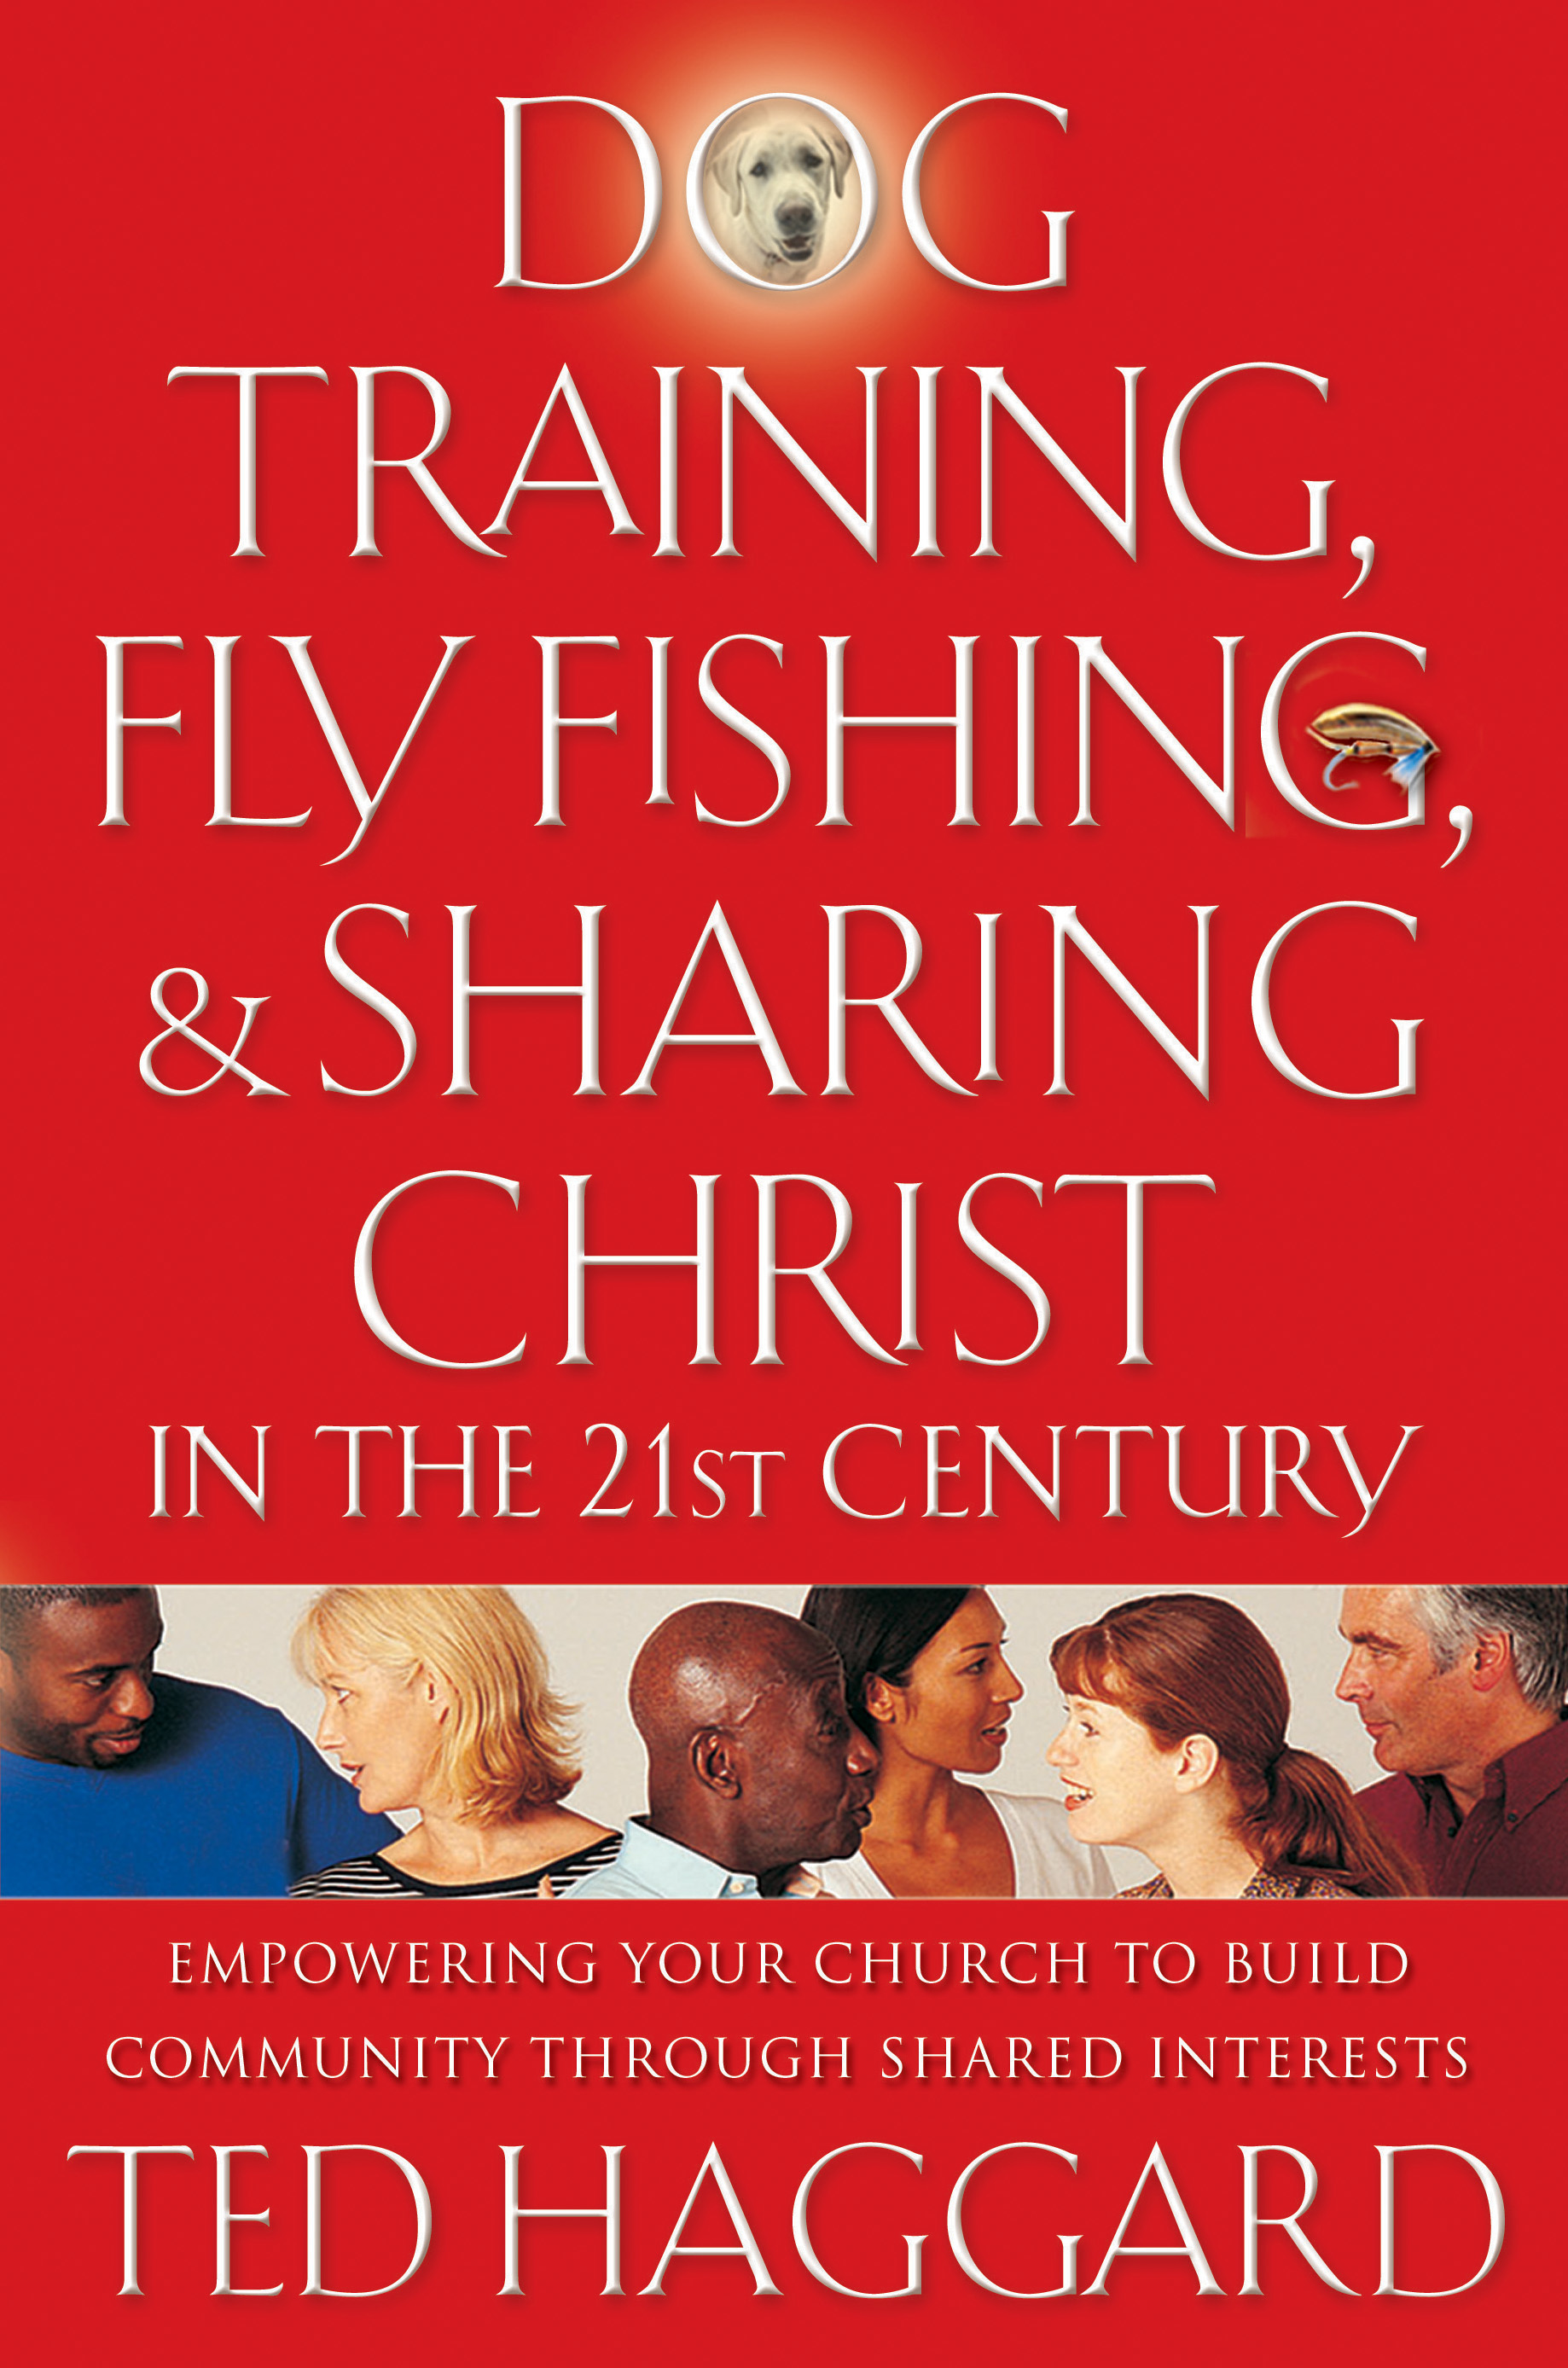 Dog Training, Fly Fishing, and Sharing Christ in the 21st Century: Empowering Your Church to Build Community Through Shared Interests